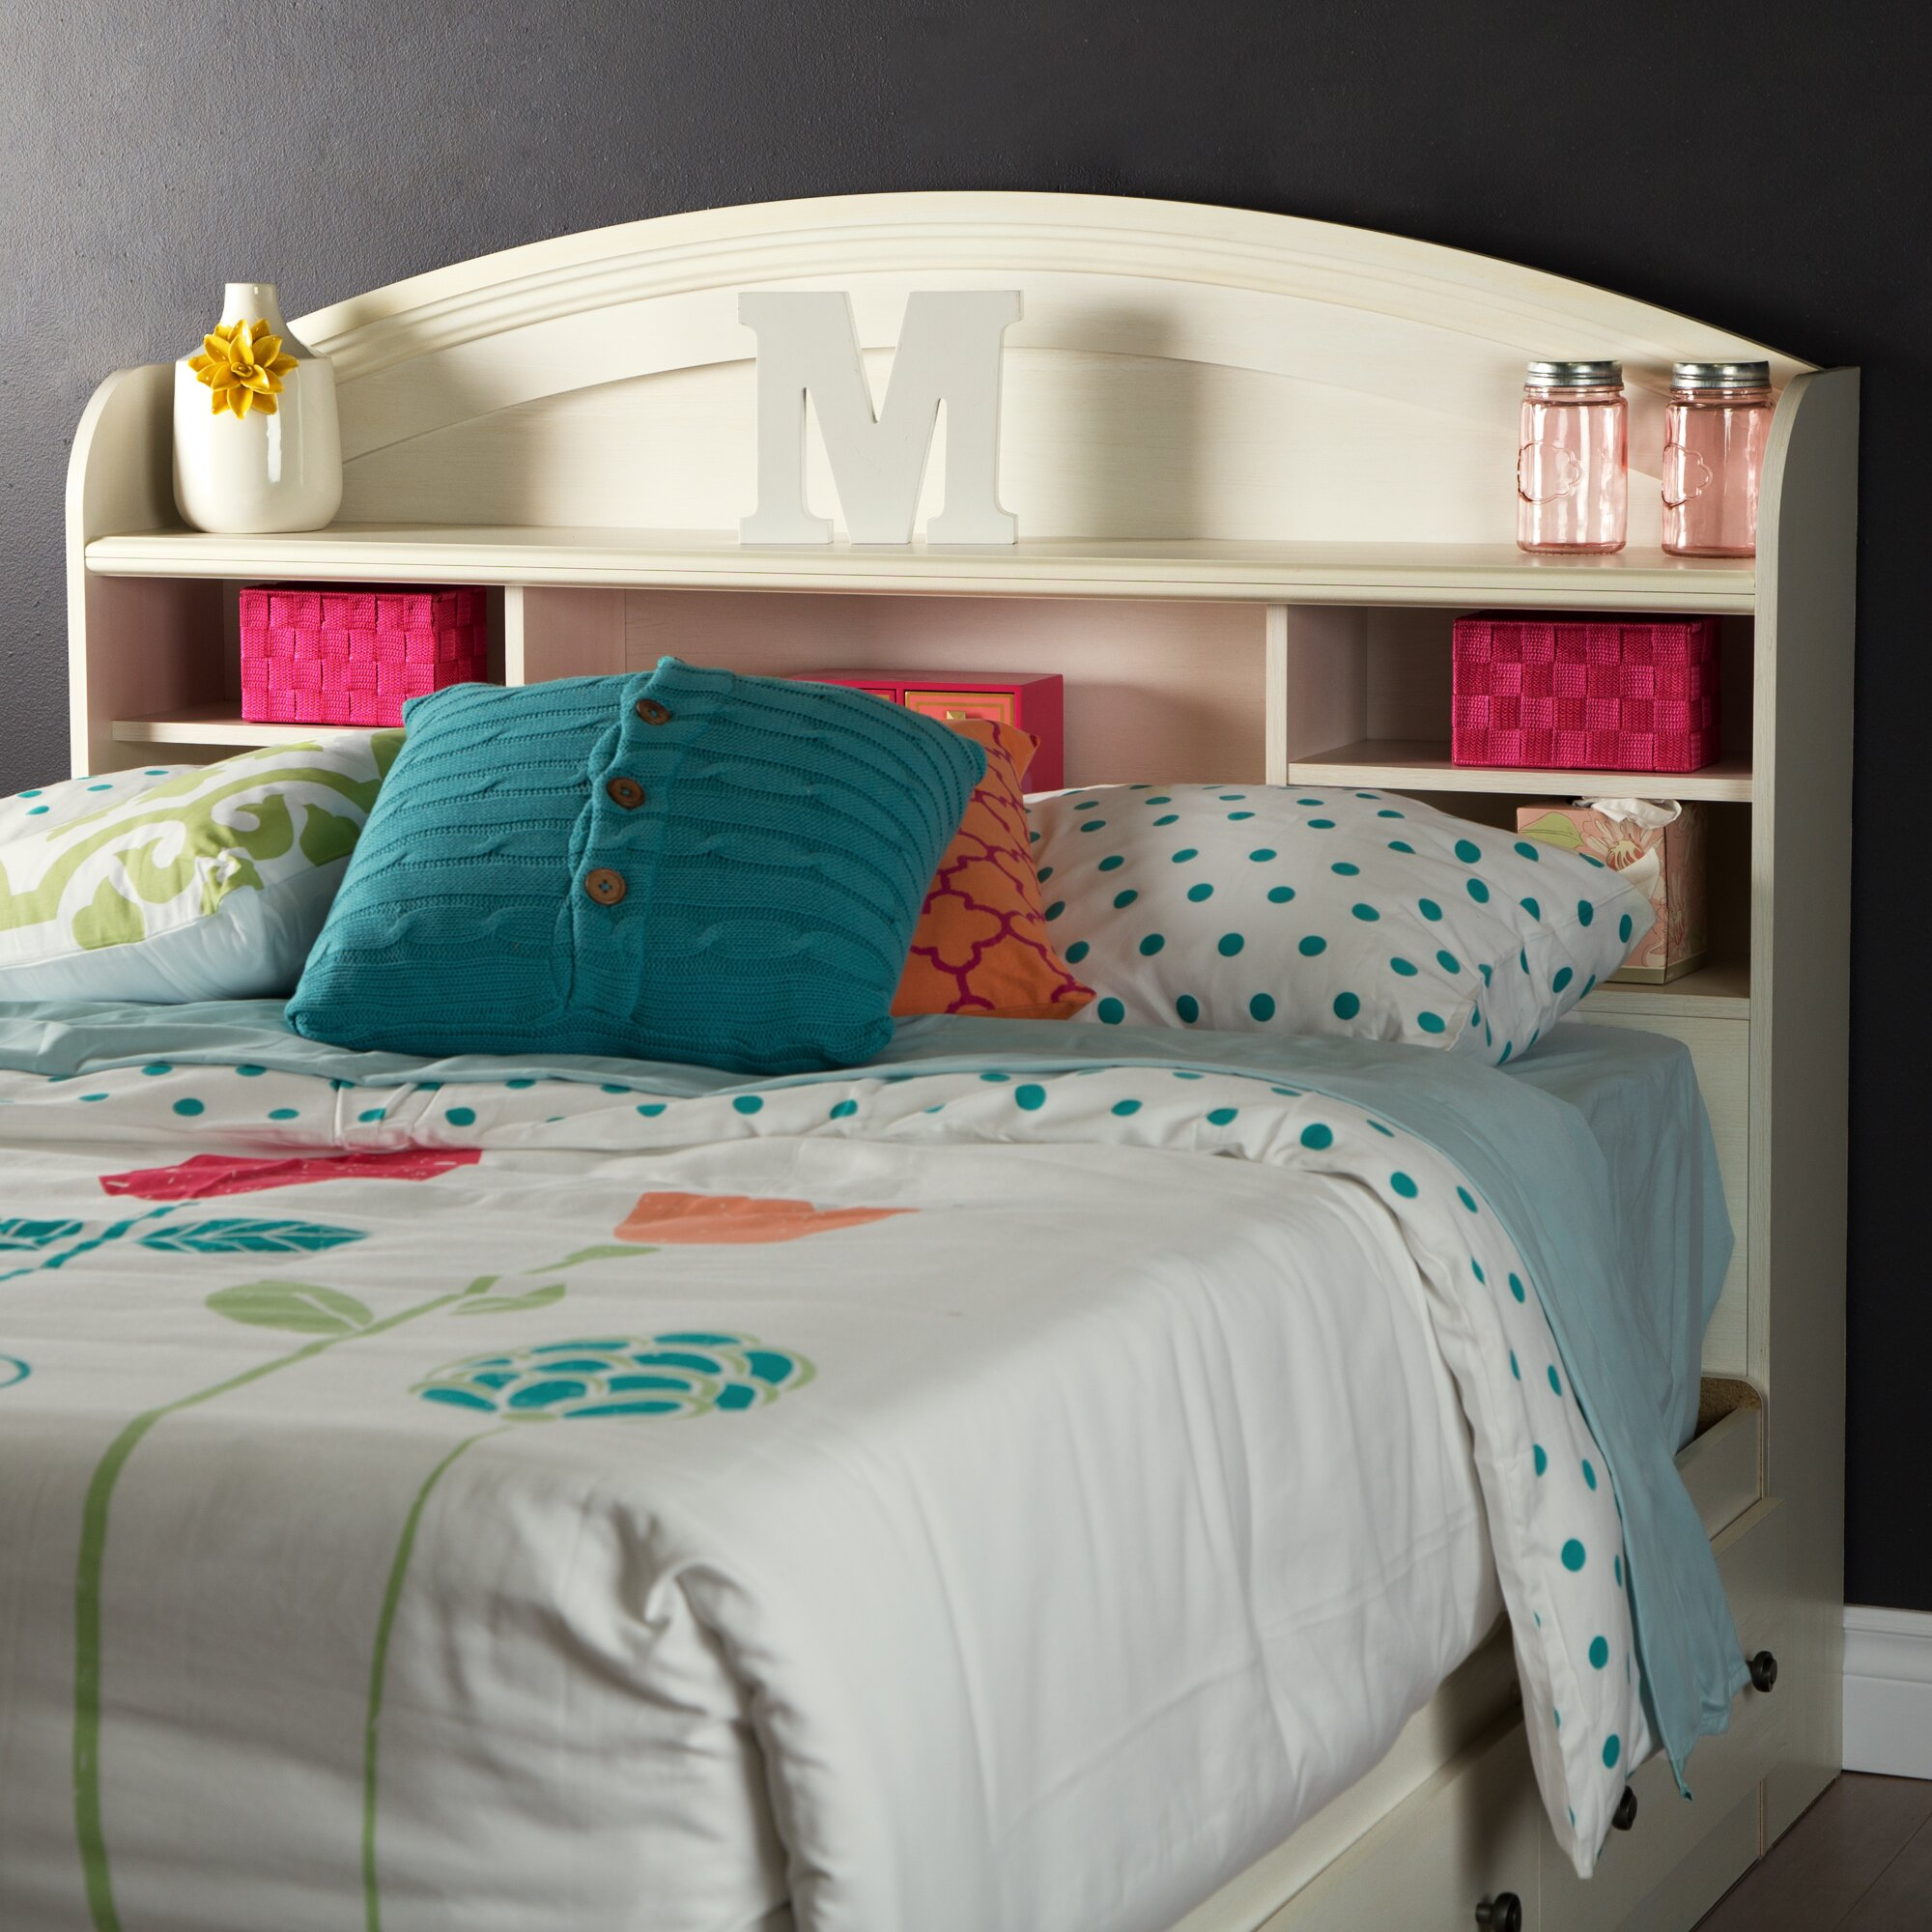 South shore country poetry bedroom set reviews wayfair - South shore furniture bedroom sets ...